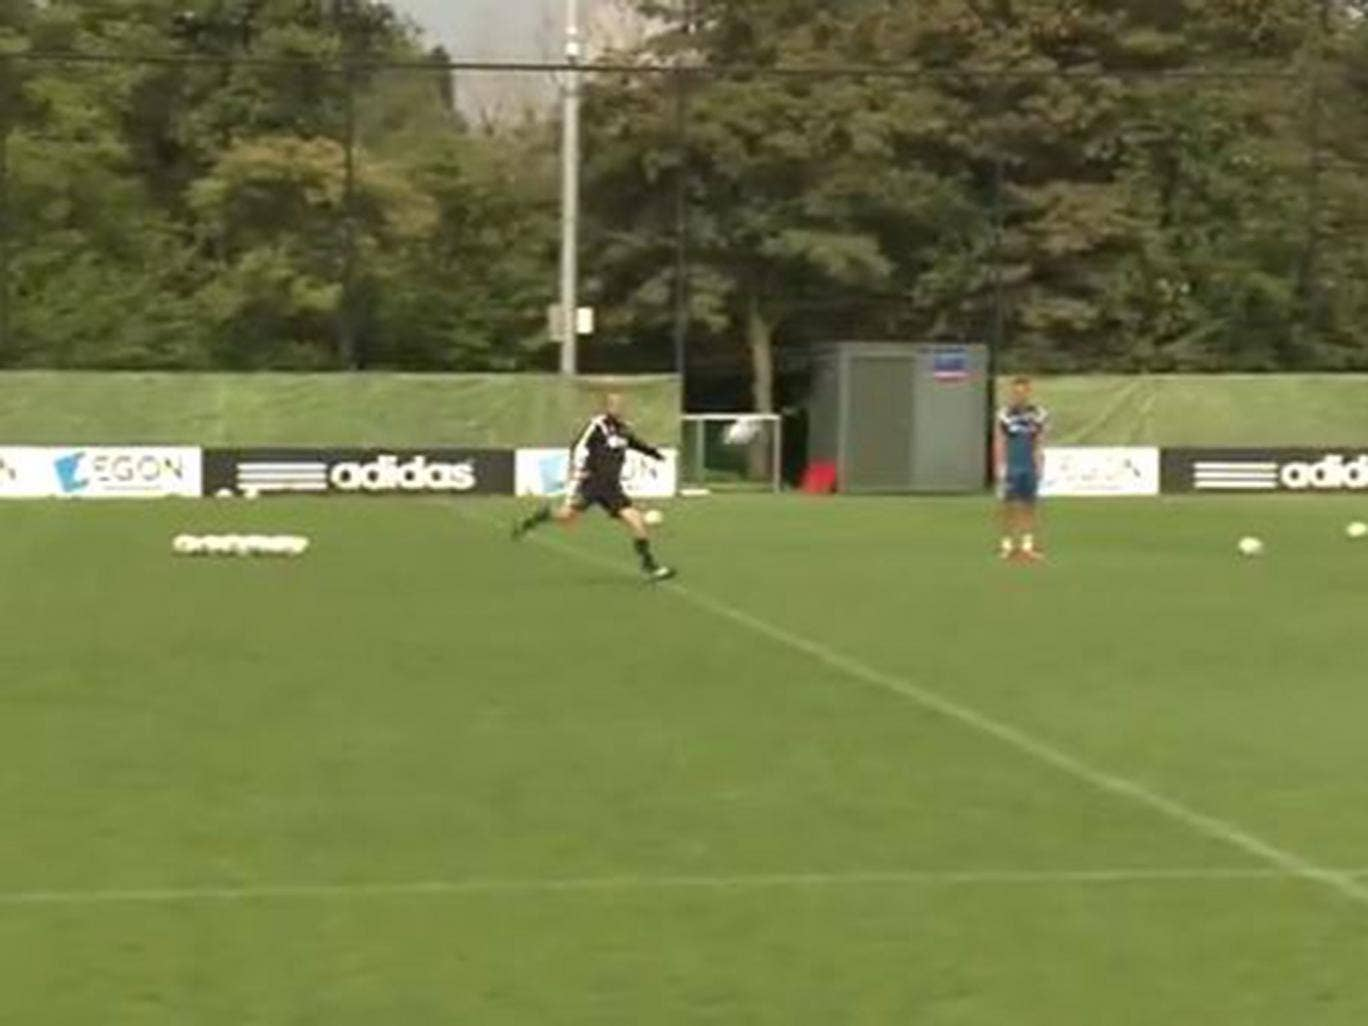 Dennis Bergkamp has been filmed executing a perfect volley at Ajax training